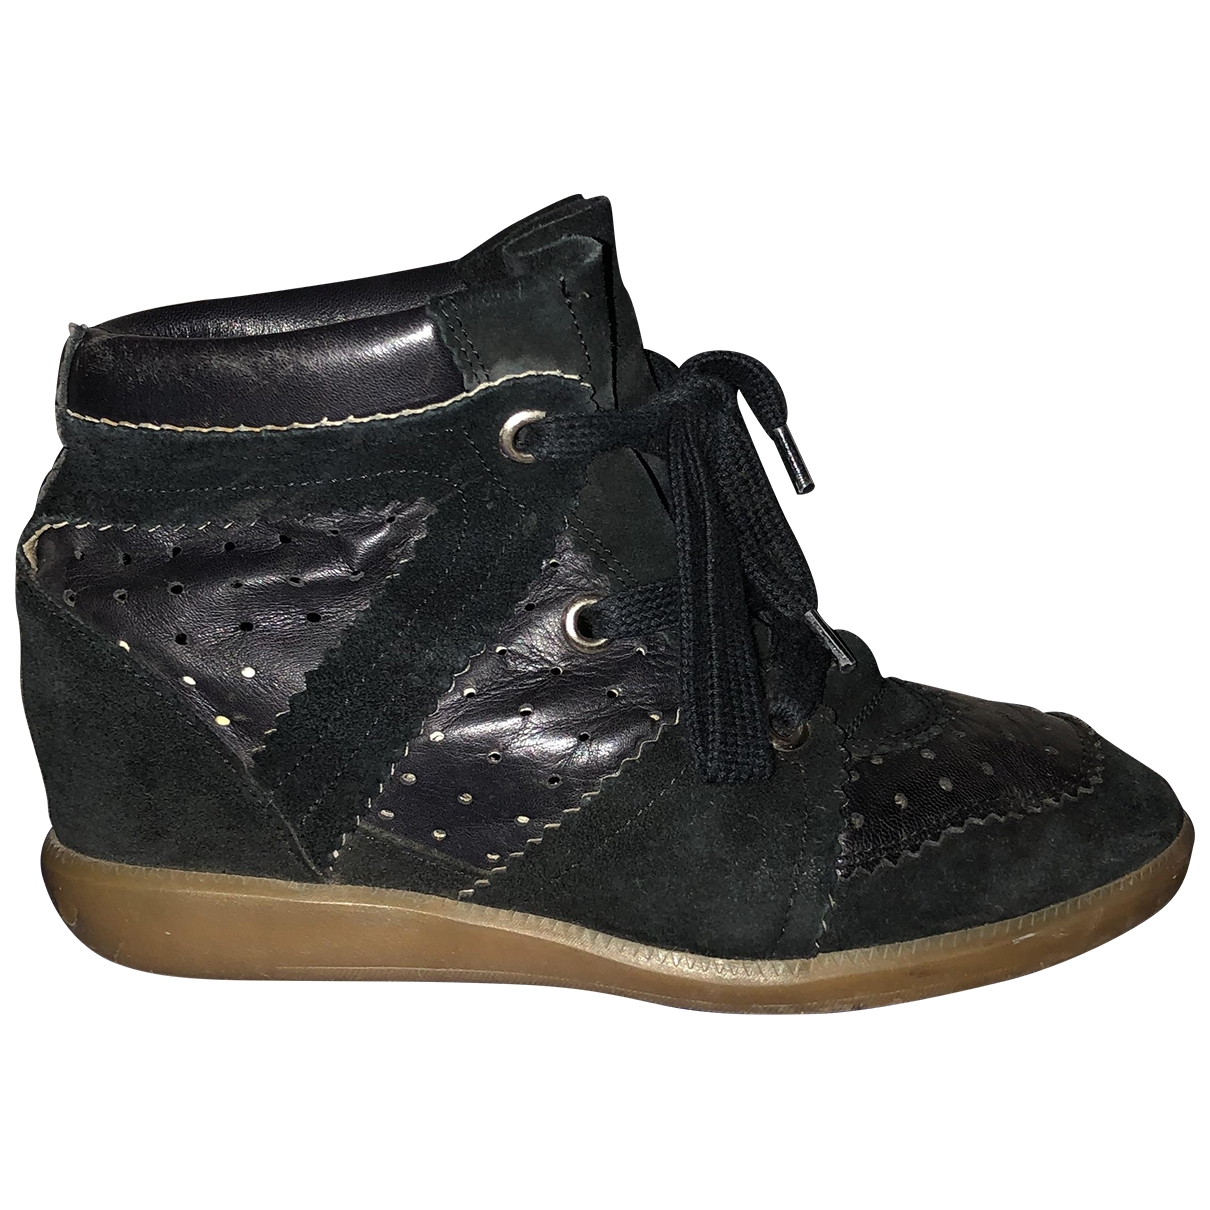 Isabel Marant Bobby Black Leather Trainers for Women 37 EU